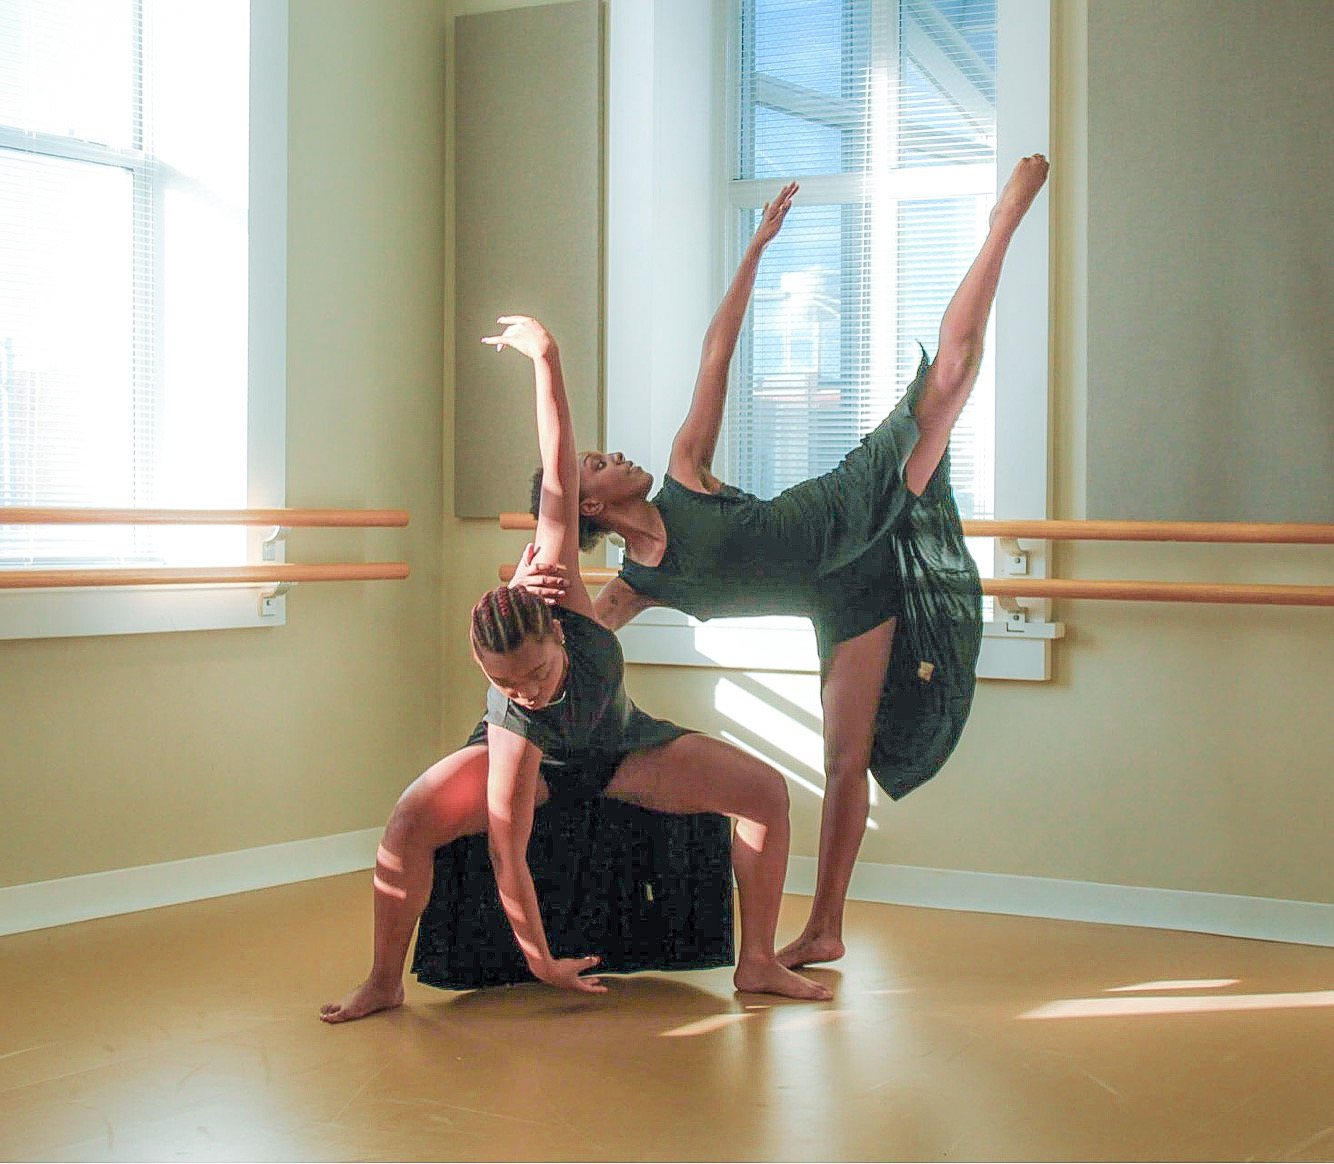 Two women dressed in green shorts and flowing tops dance in the corner of a clean dance studio in front of windows